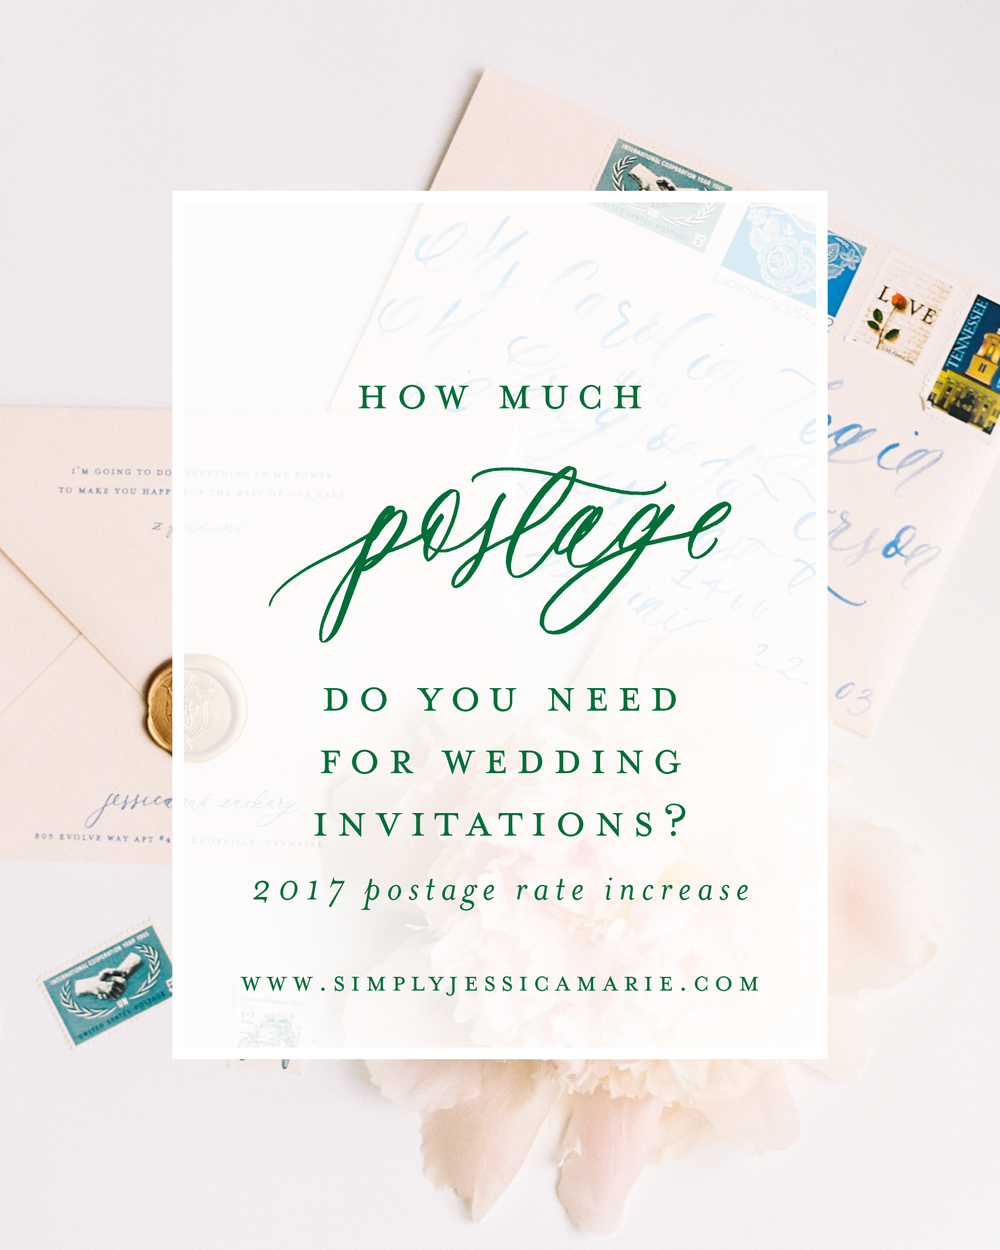 how much does it cost to mail a letter how much postage do you need for wedding invitations 11401